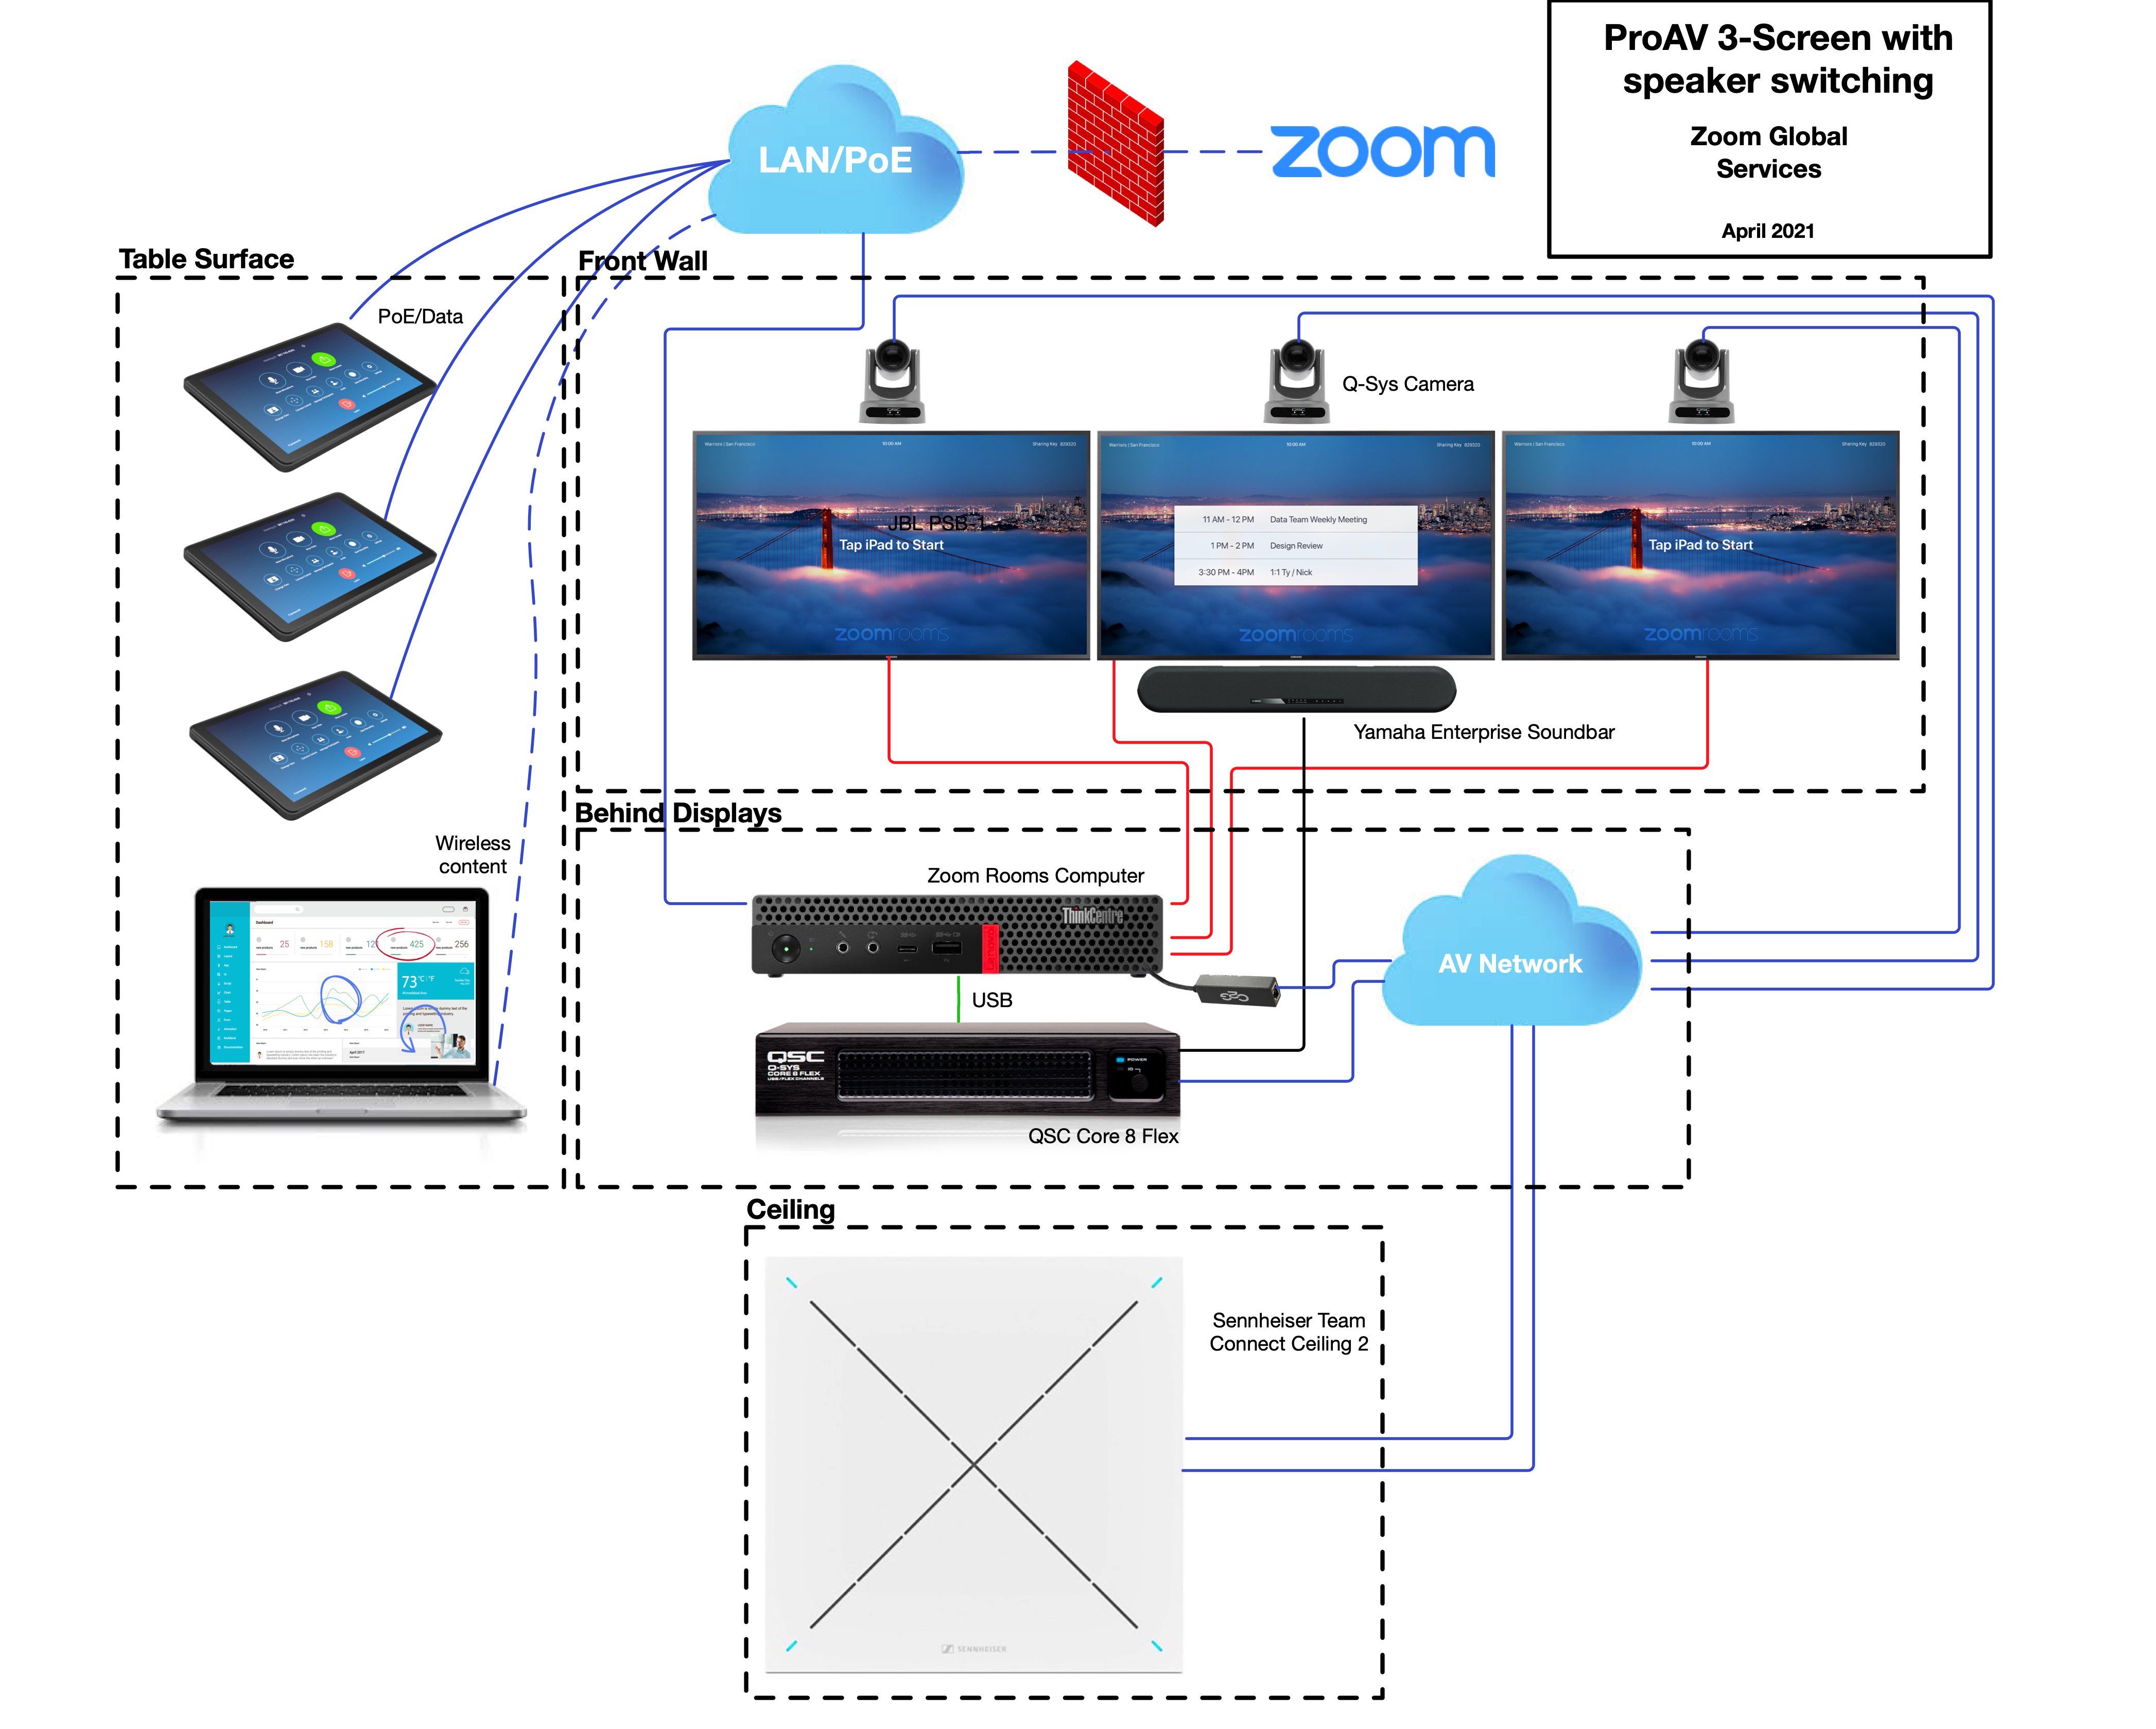 Pictorial_Schematic_-_Zoom_Rooms_ProAV_3-Screen__6-10_People__Q-Sys.png